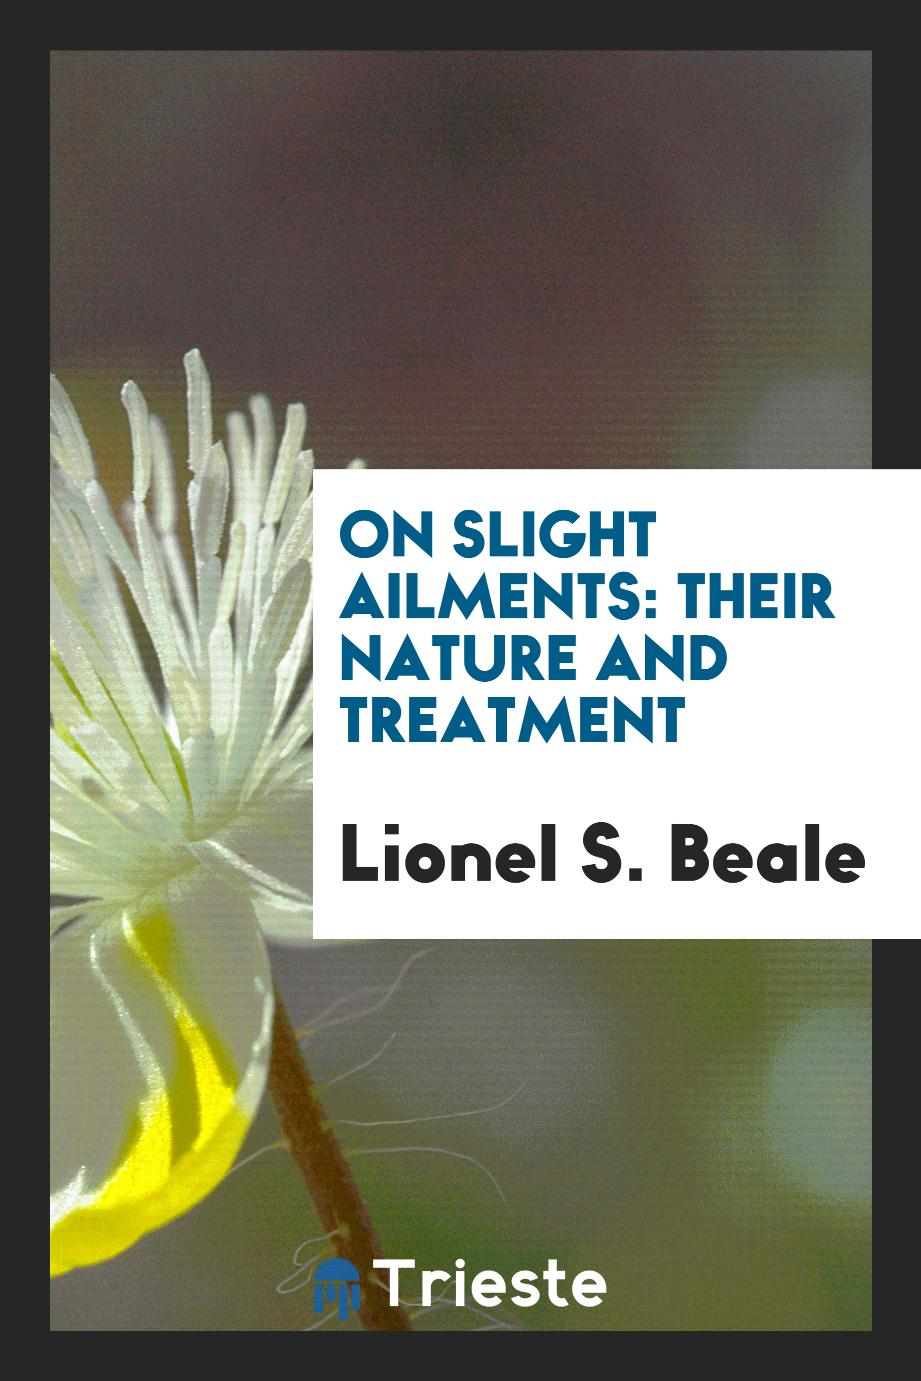 Lionel S. Beale - On Slight Ailments: Their Nature and Treatment